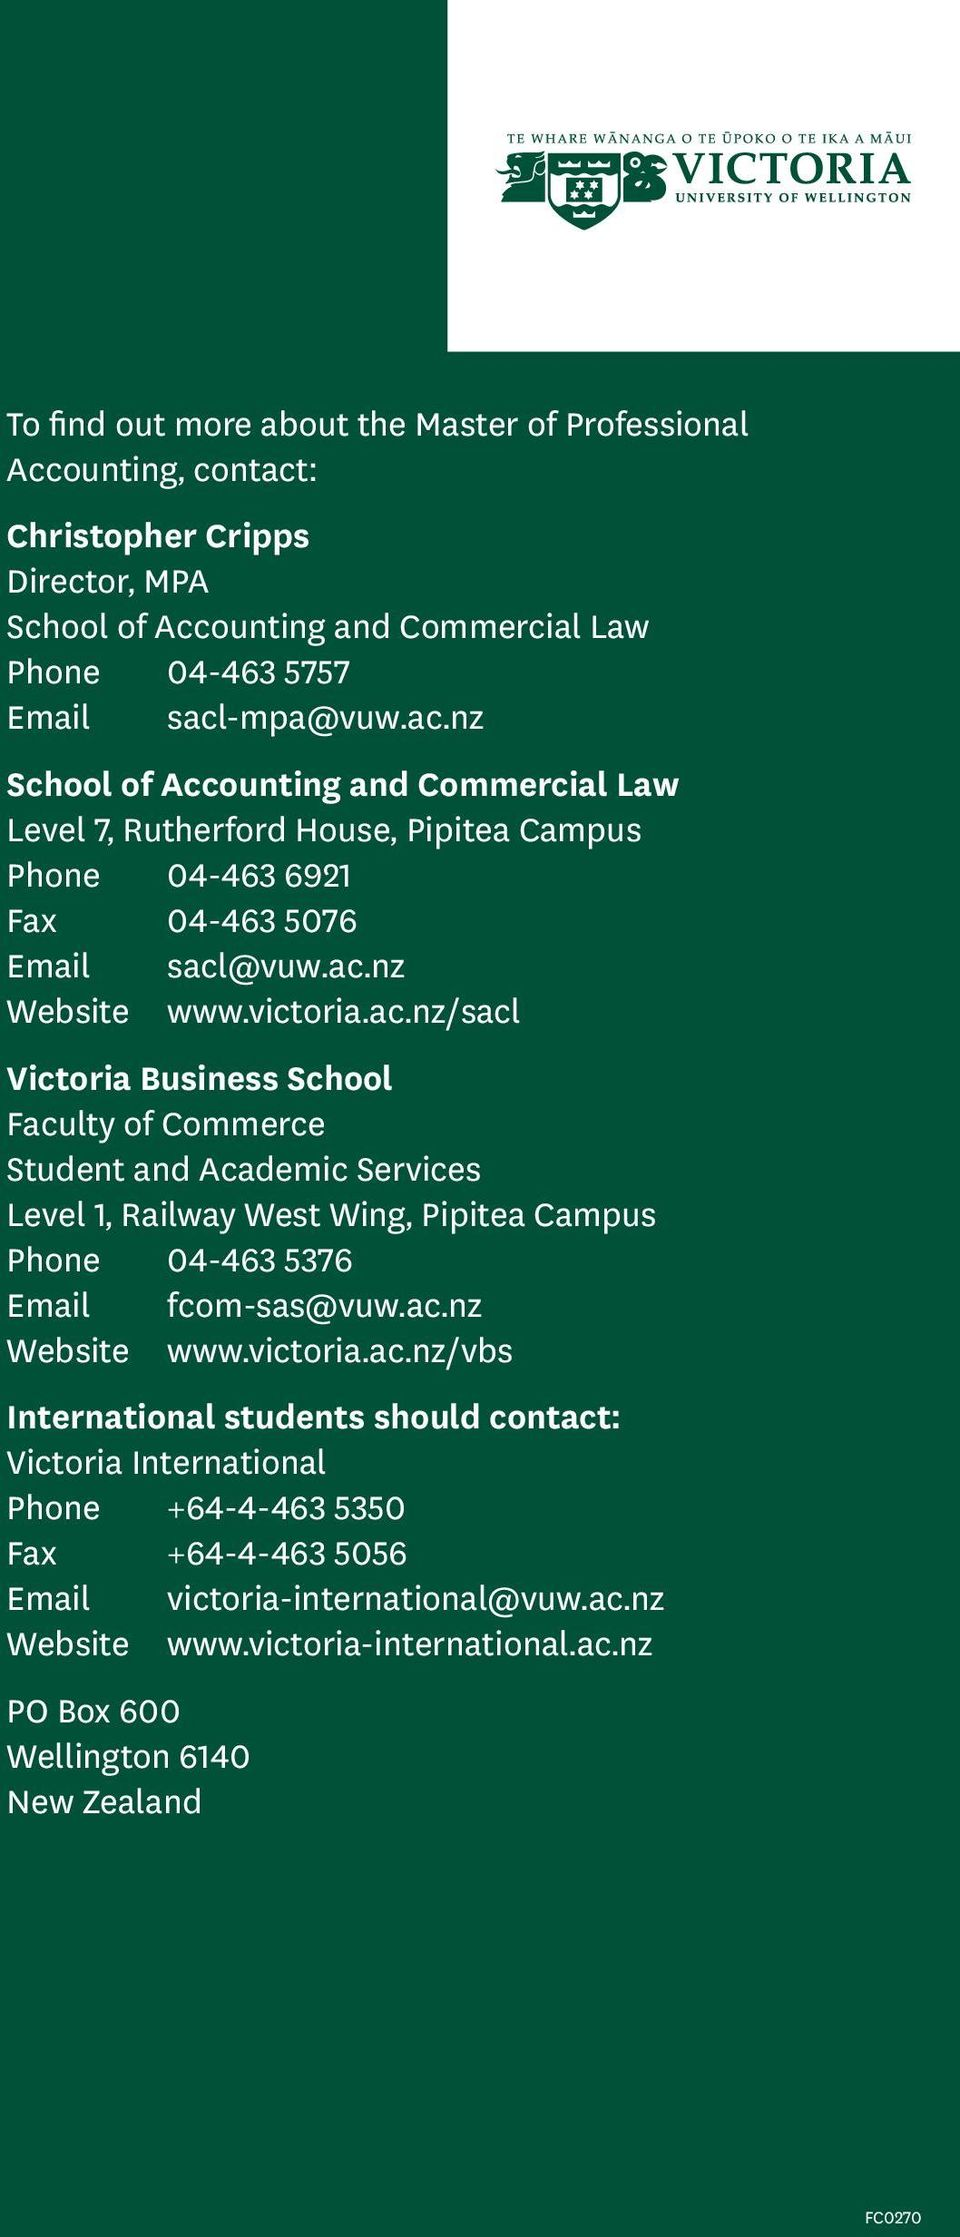 -mpa@vuw.ac.nz School of Accounting and Commercial Law Level 7, Rutherford House, Pipitea Campus Phone 04-463 6921 Fax 04-463 5076 Email sacl@vuw.ac.nz Website www.victoria.ac.nz/sacl Victoria Business School Faculty of Commerce Student and Academic Services Level 1, Railway West Wing, Pipitea Campus Phone 04-463 5376 Email fcom-sas@vuw.